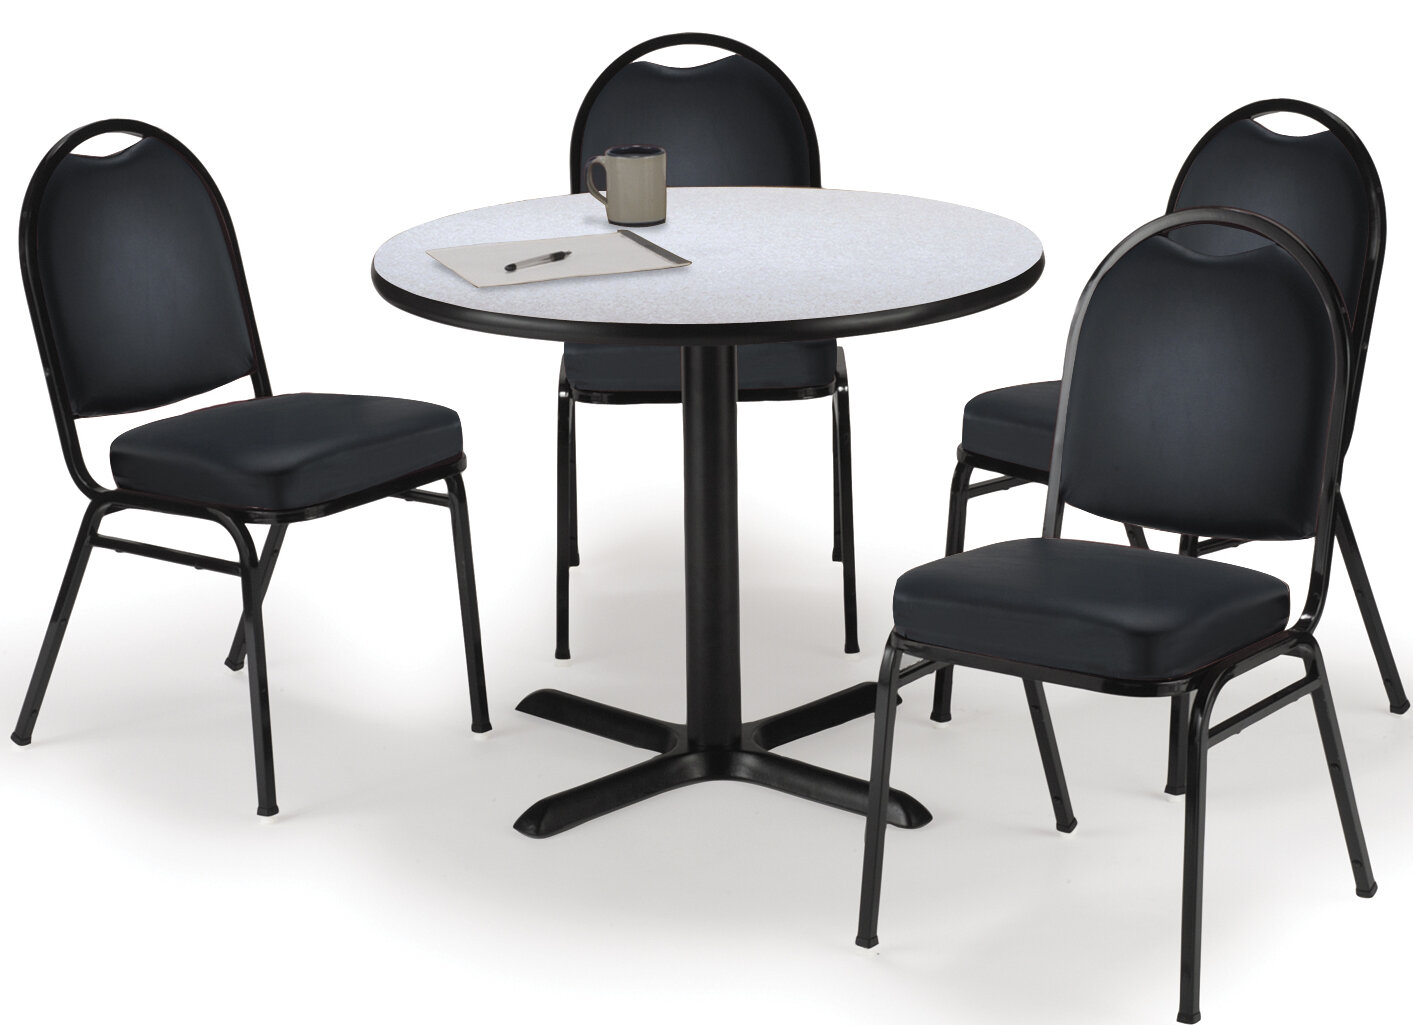 kfi seating round cafeteria table and chair set wayfair